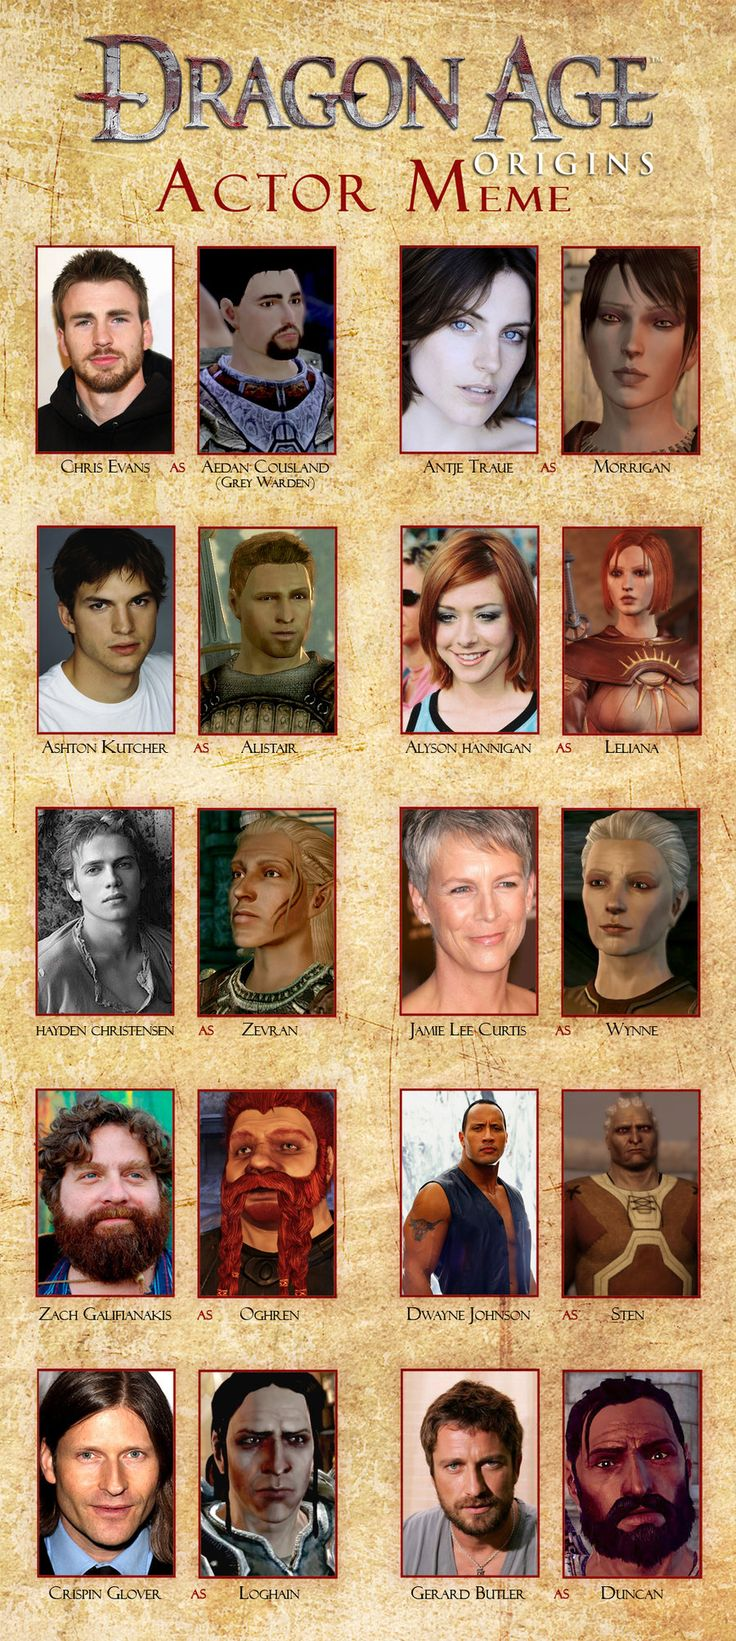 Ok, I can see it. Now go make the movie! Dragon Age